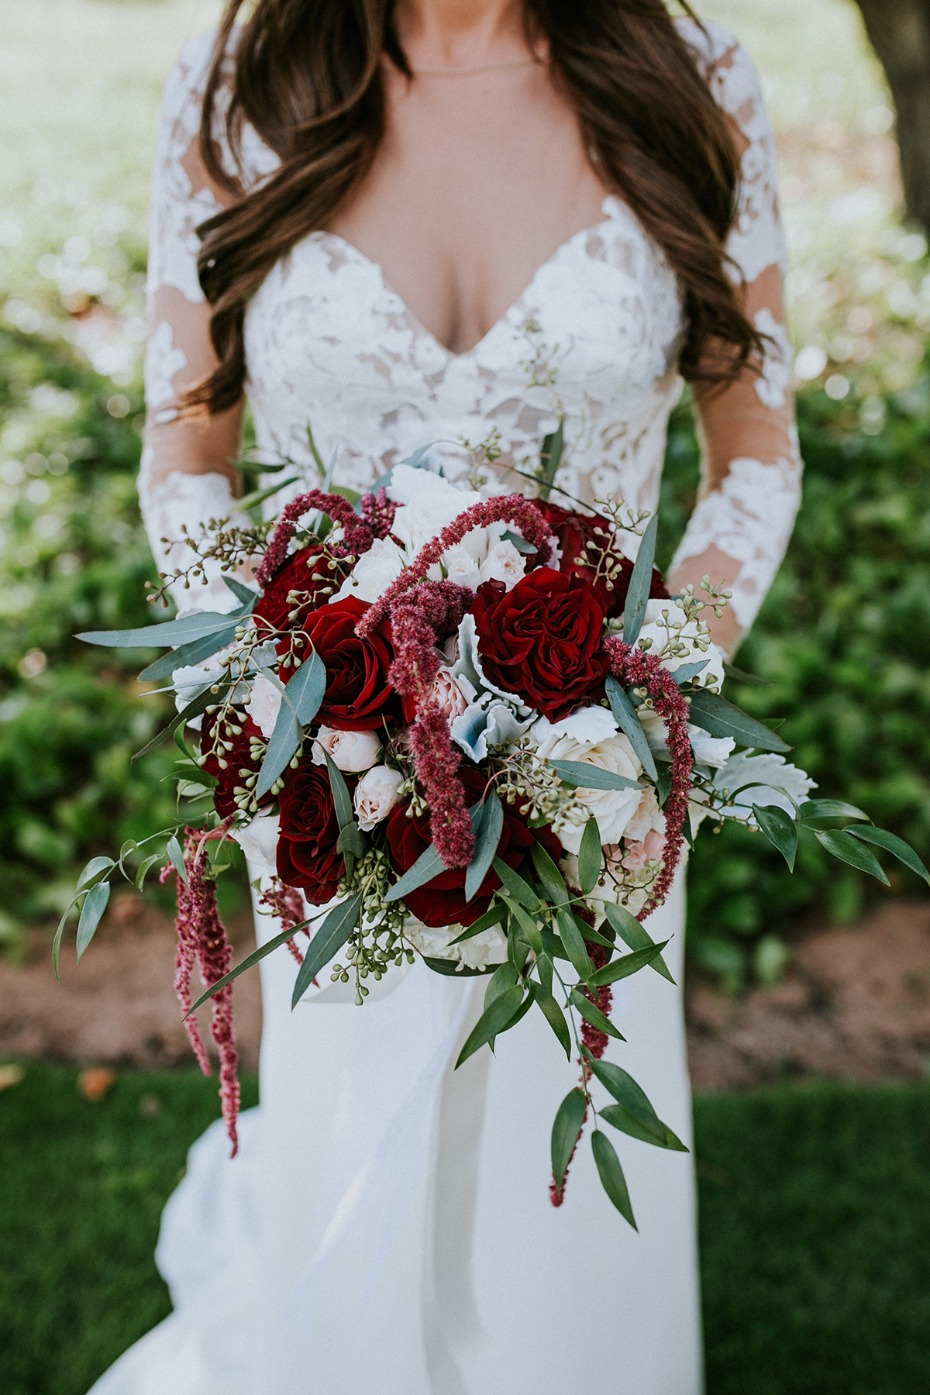 Pops of red bouquet